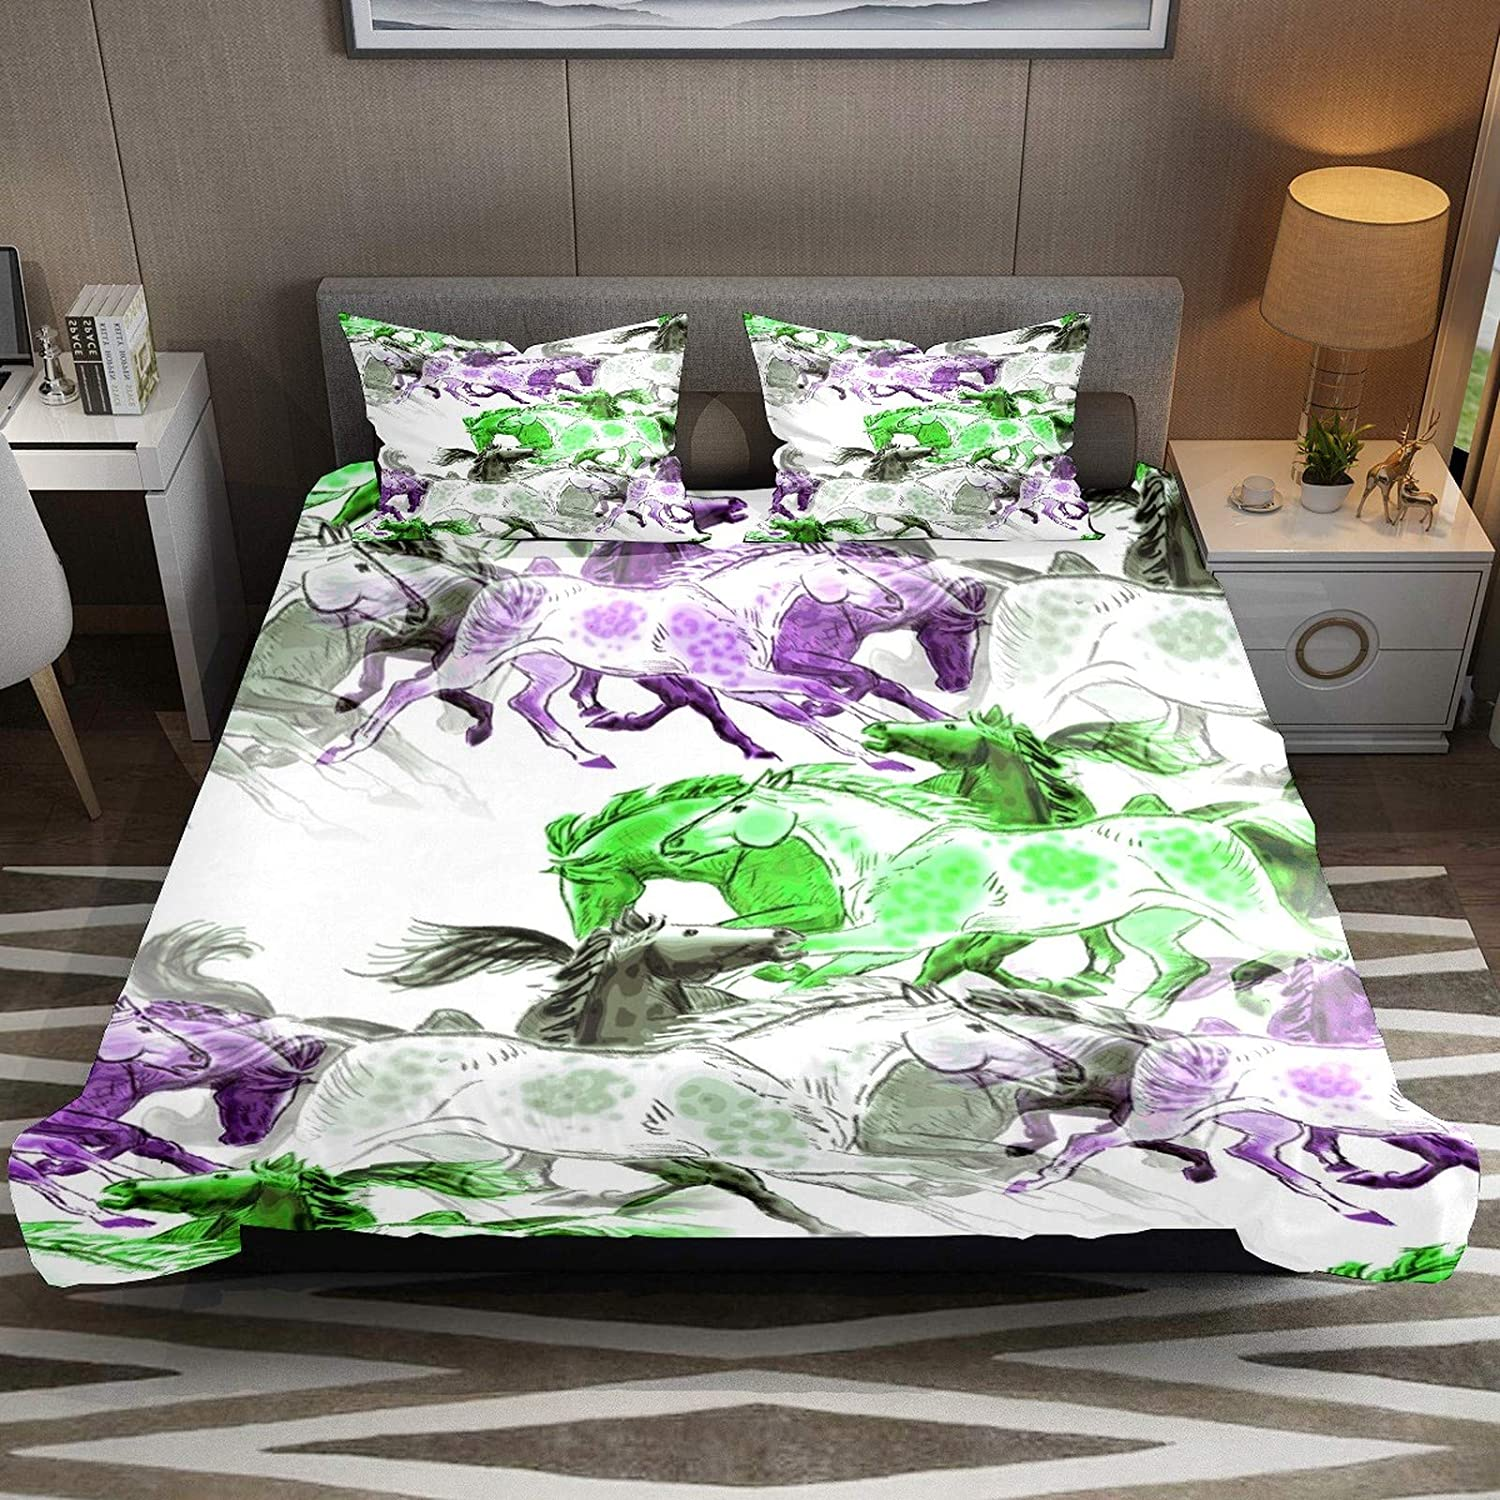 Horse Green Purple Grey Comforter Cover Set CK Size 3pcs Duvet Cover Bedding Sets & Collections with Zipper Ties for Woman Teens Kids Modern Customize (1 Quilt Cover +2 Pillowcases)